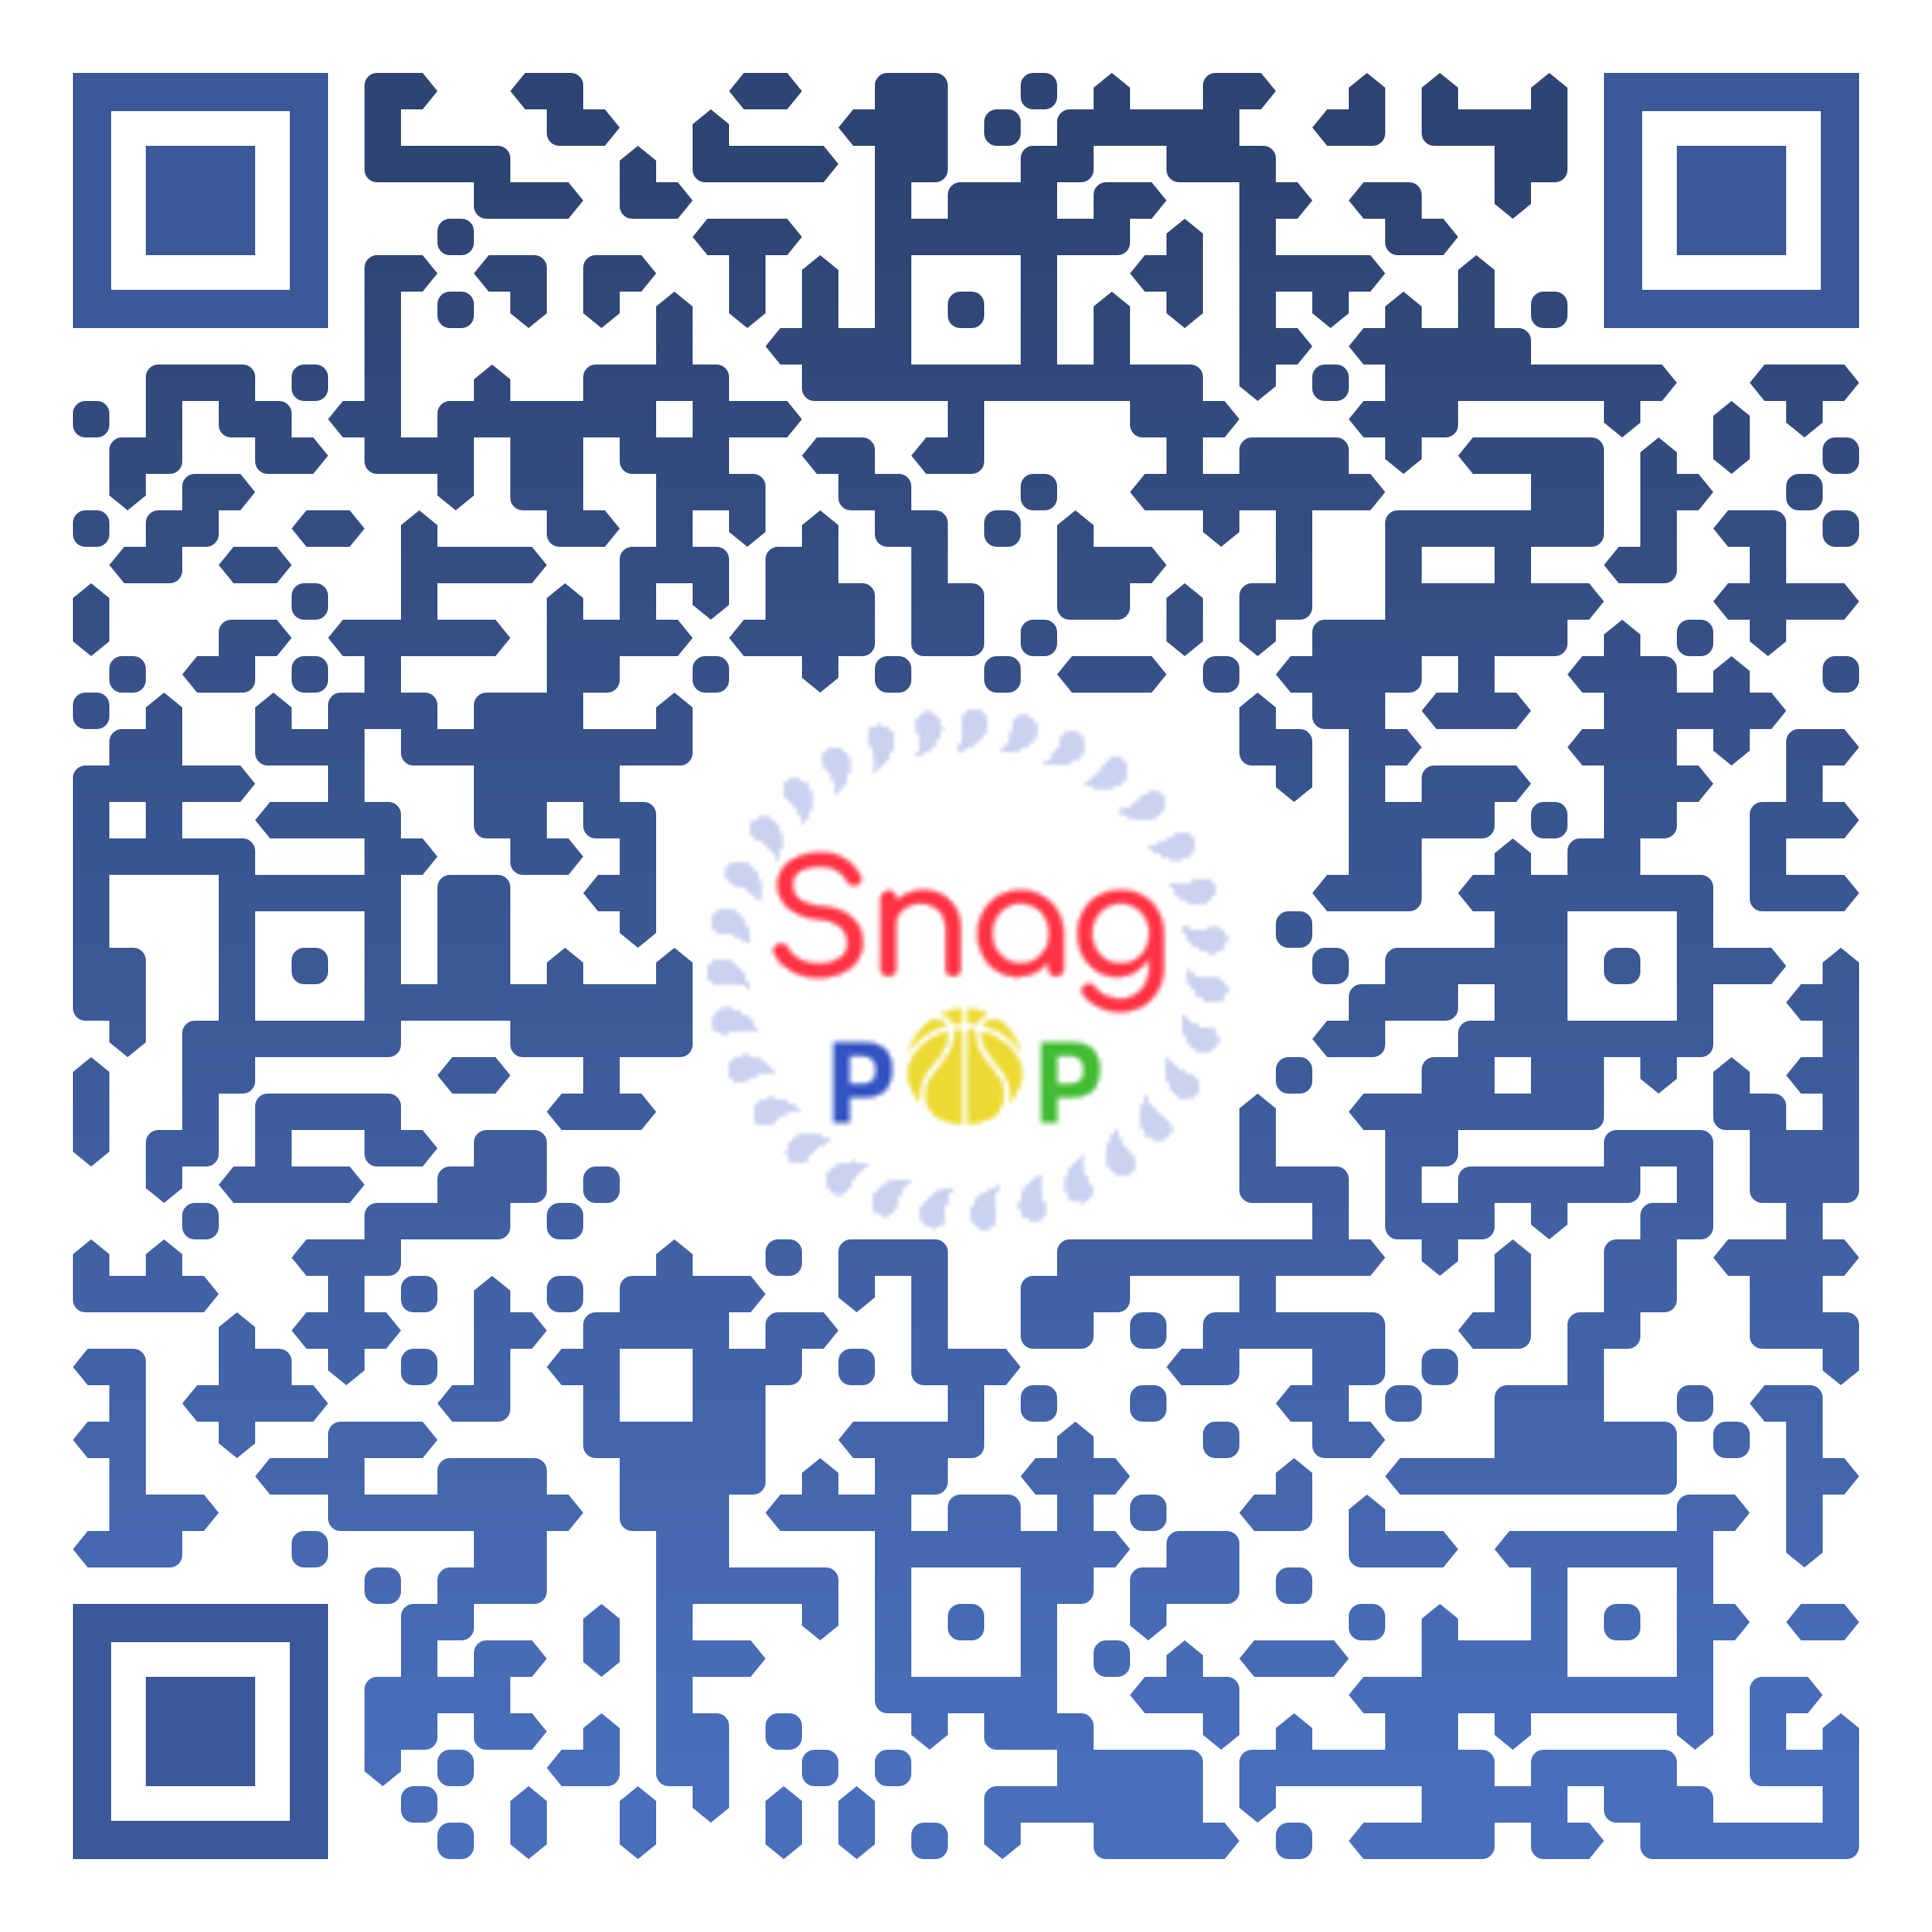 SnagPop App QR Code for Google Play